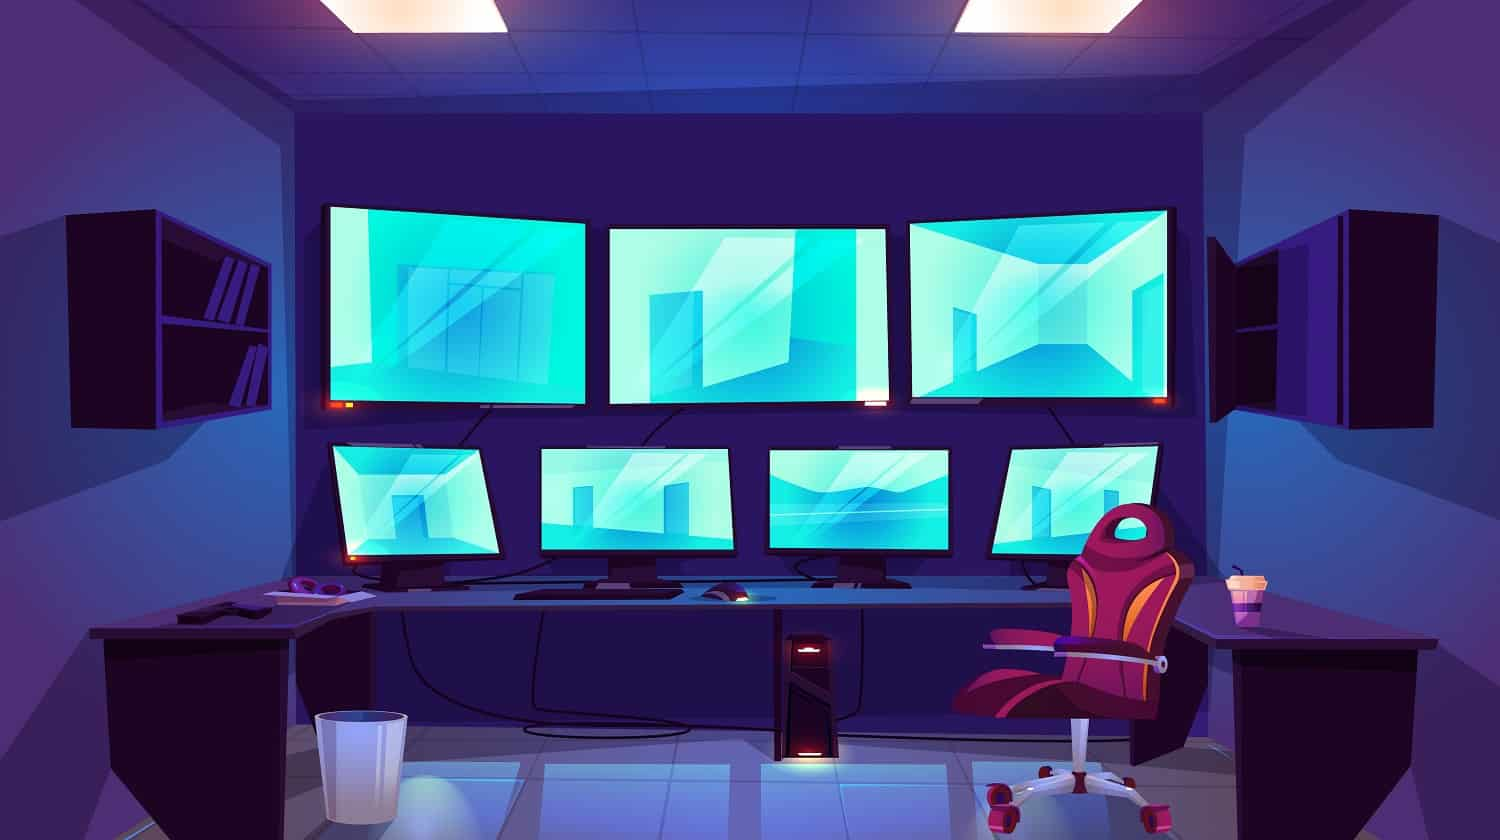 Security control cctv room interior with multiple monitors displaying video from surveillance cameras with outside and inside monitoring views. Guardian center with screens cartoon vector illustration